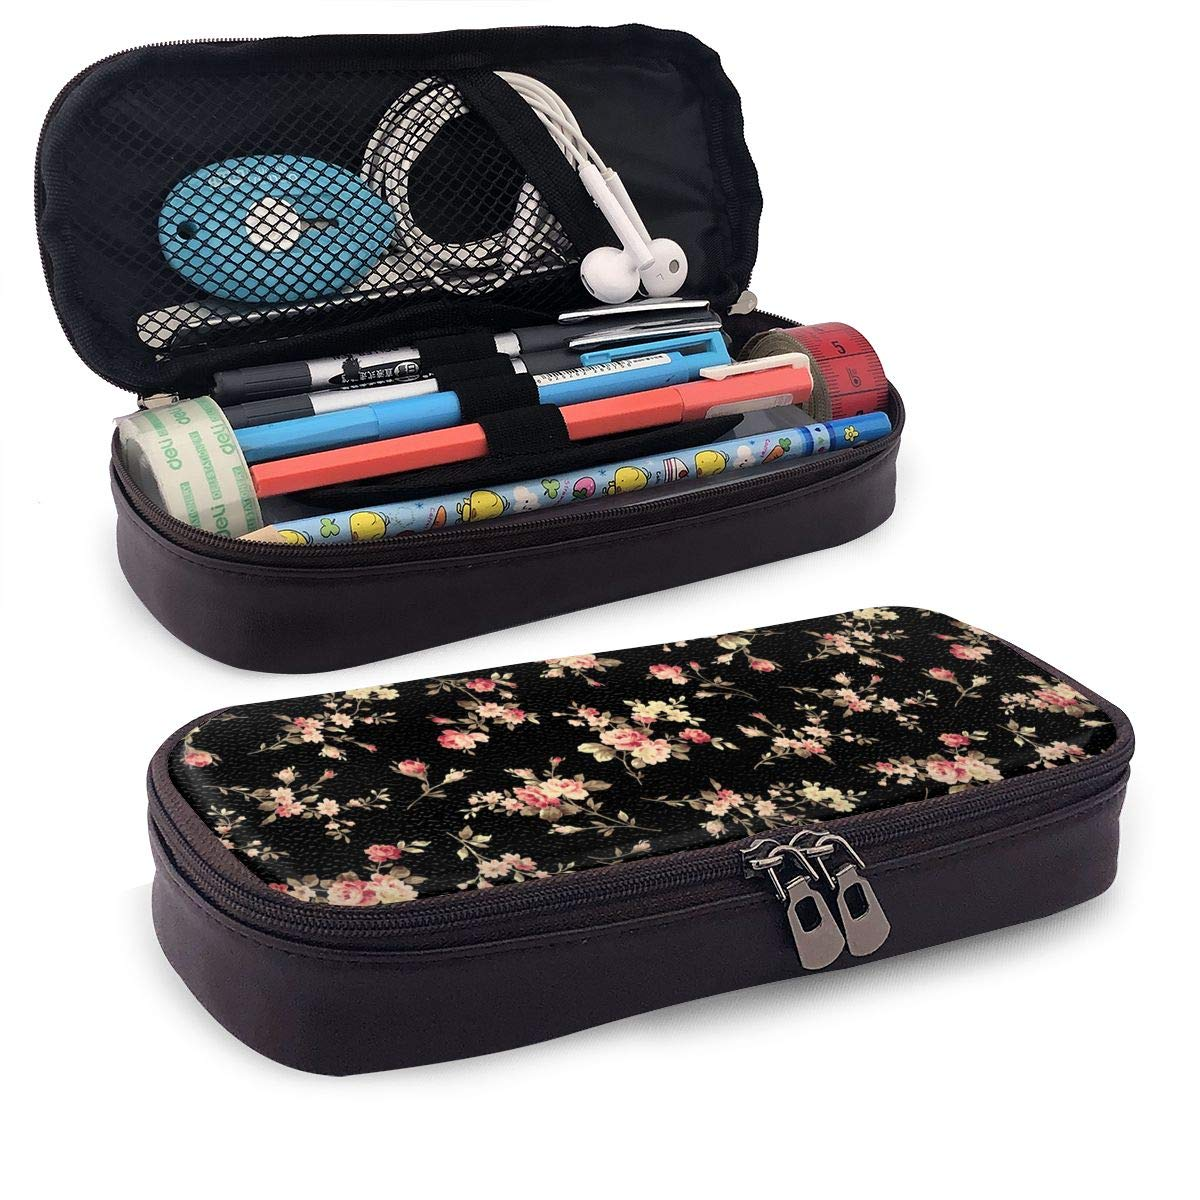 AHOOCUSTOM Floral Flower Leather Pencil Pen Case Double Zippers School Office Stationery Bag for Girls Boys or Adults (Brown)